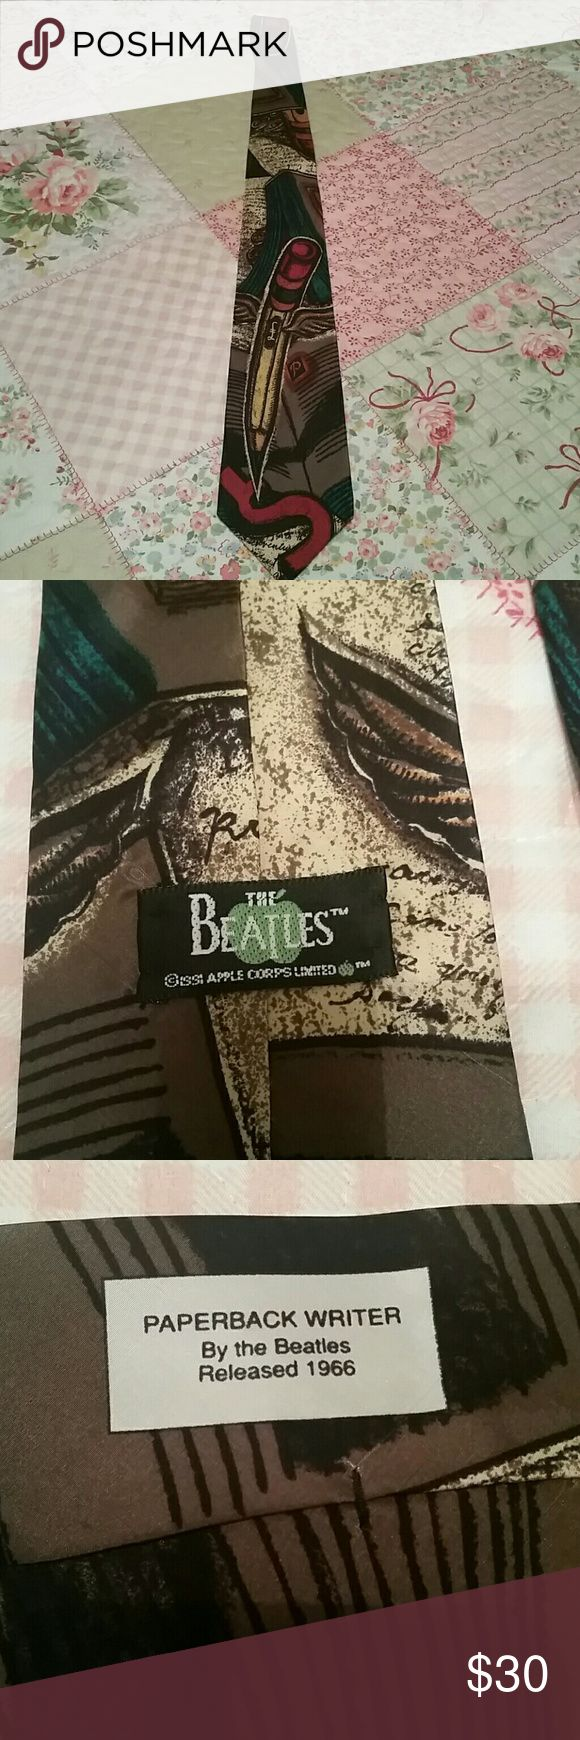 Men's Tie Rare Paperback Writer tie. From the Beatles collection. Very hard to find! Accessories Ties